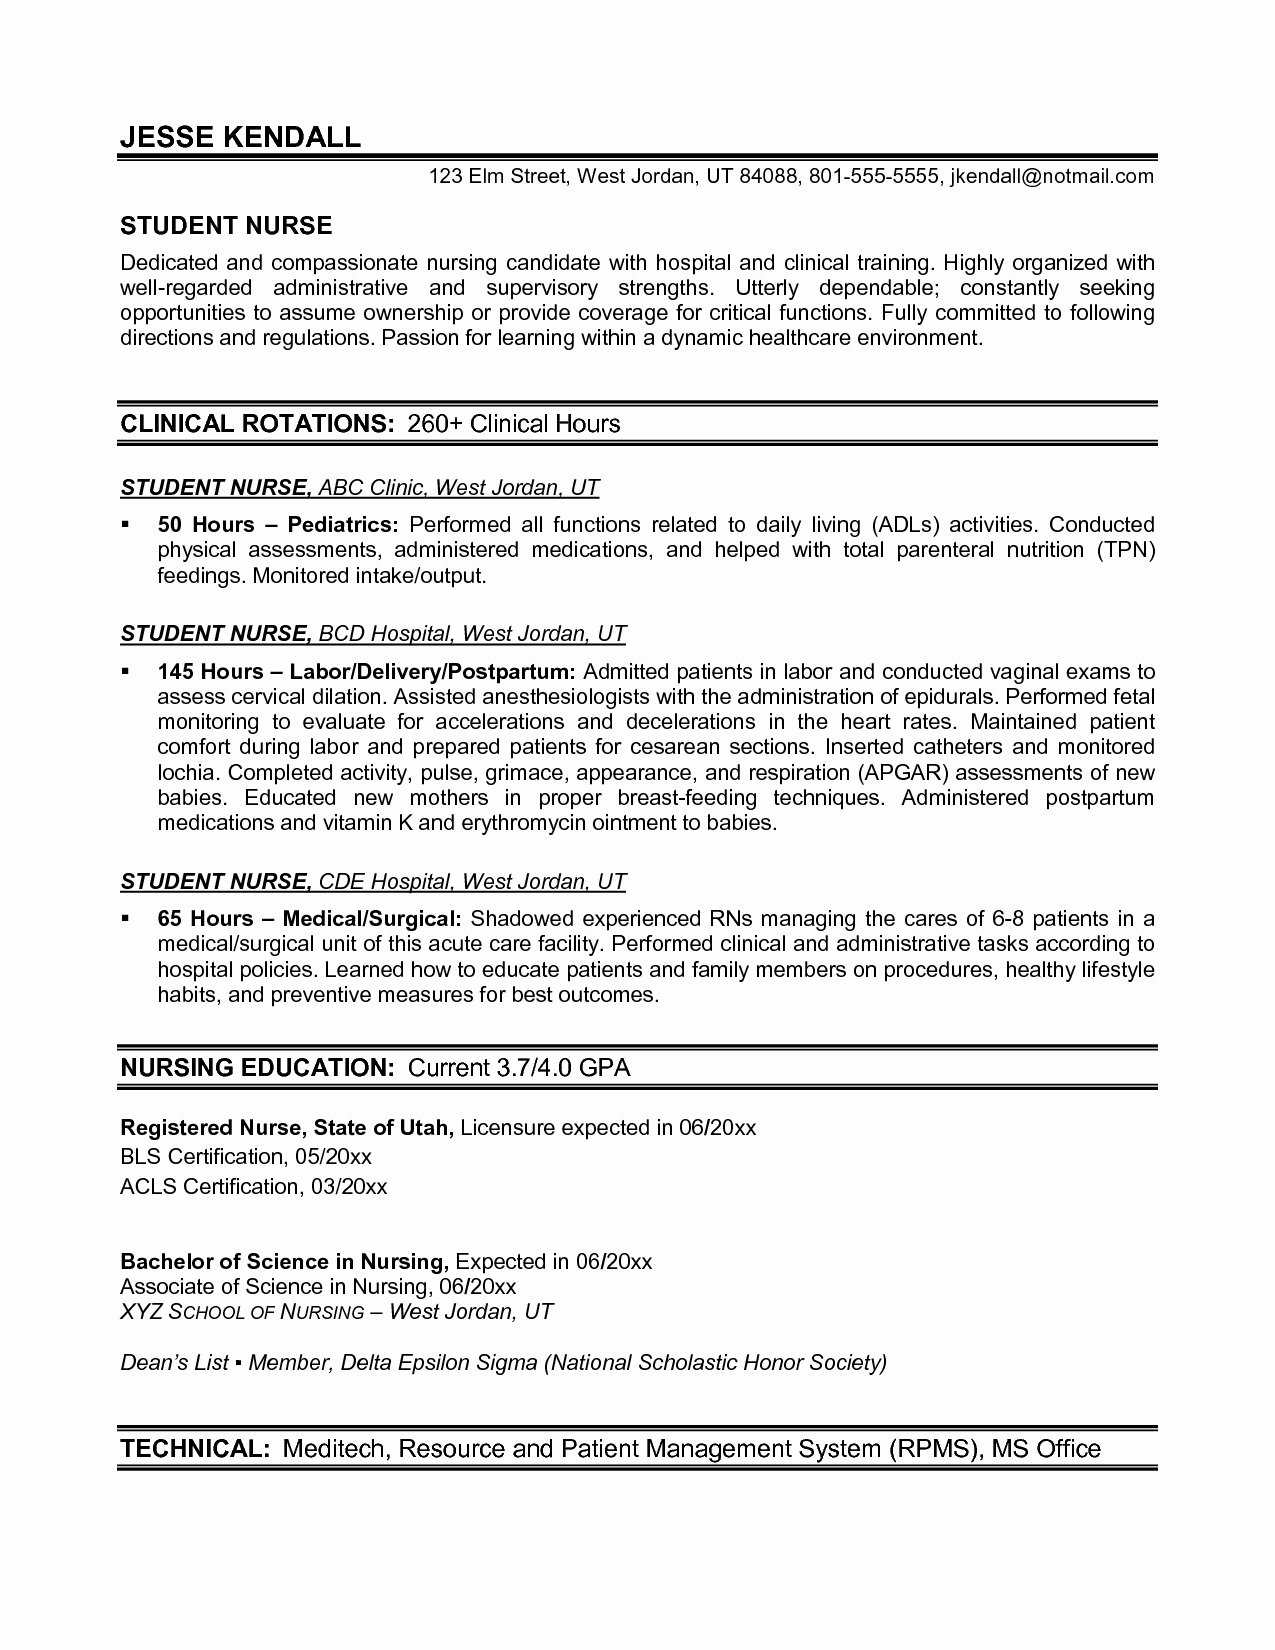 Resume Template Nursing Nursing